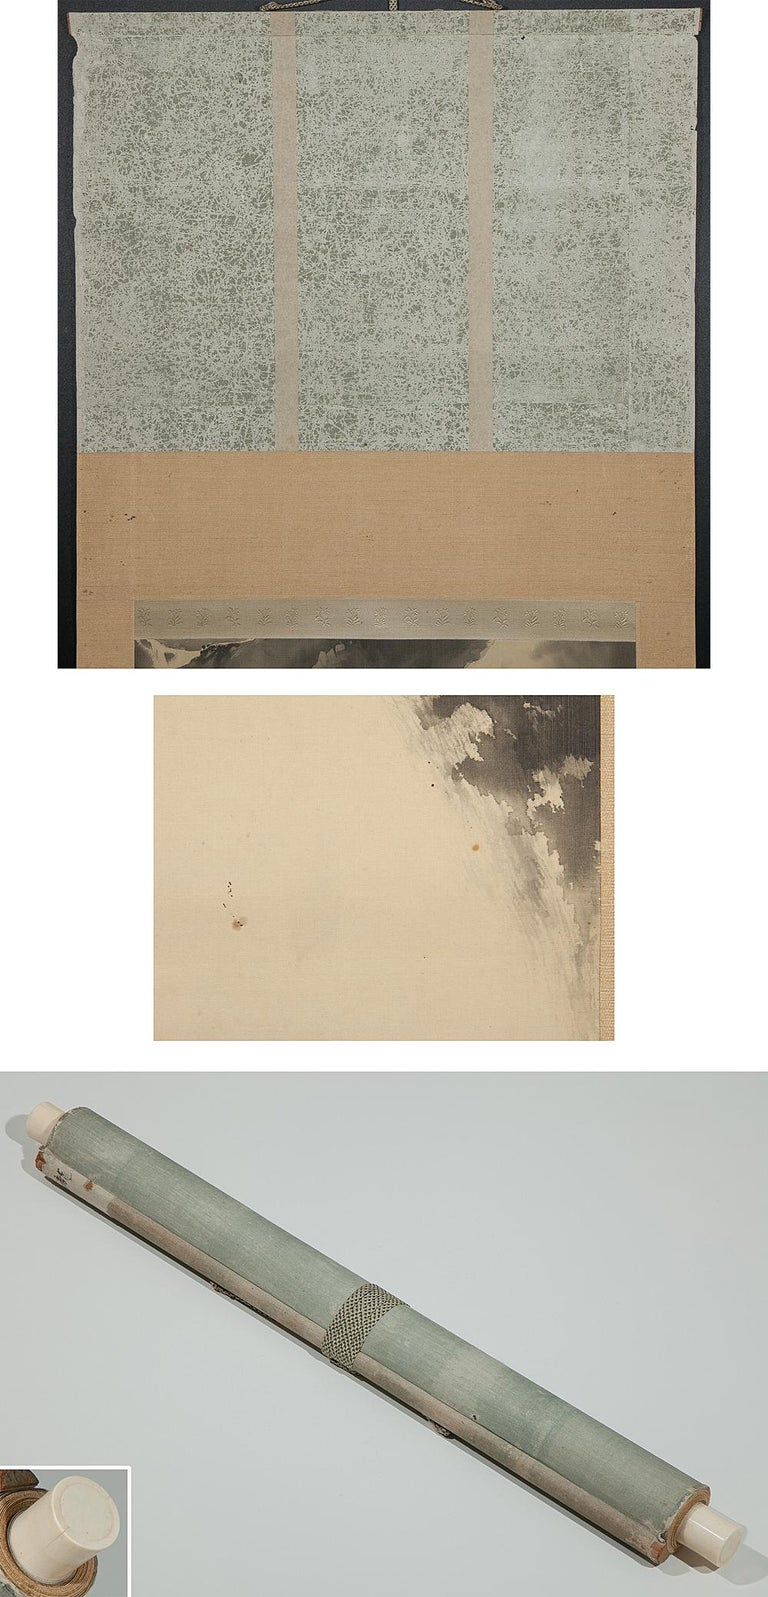 Lovely Meiji period scroll paintings Japan Artist waterfall landscape painted